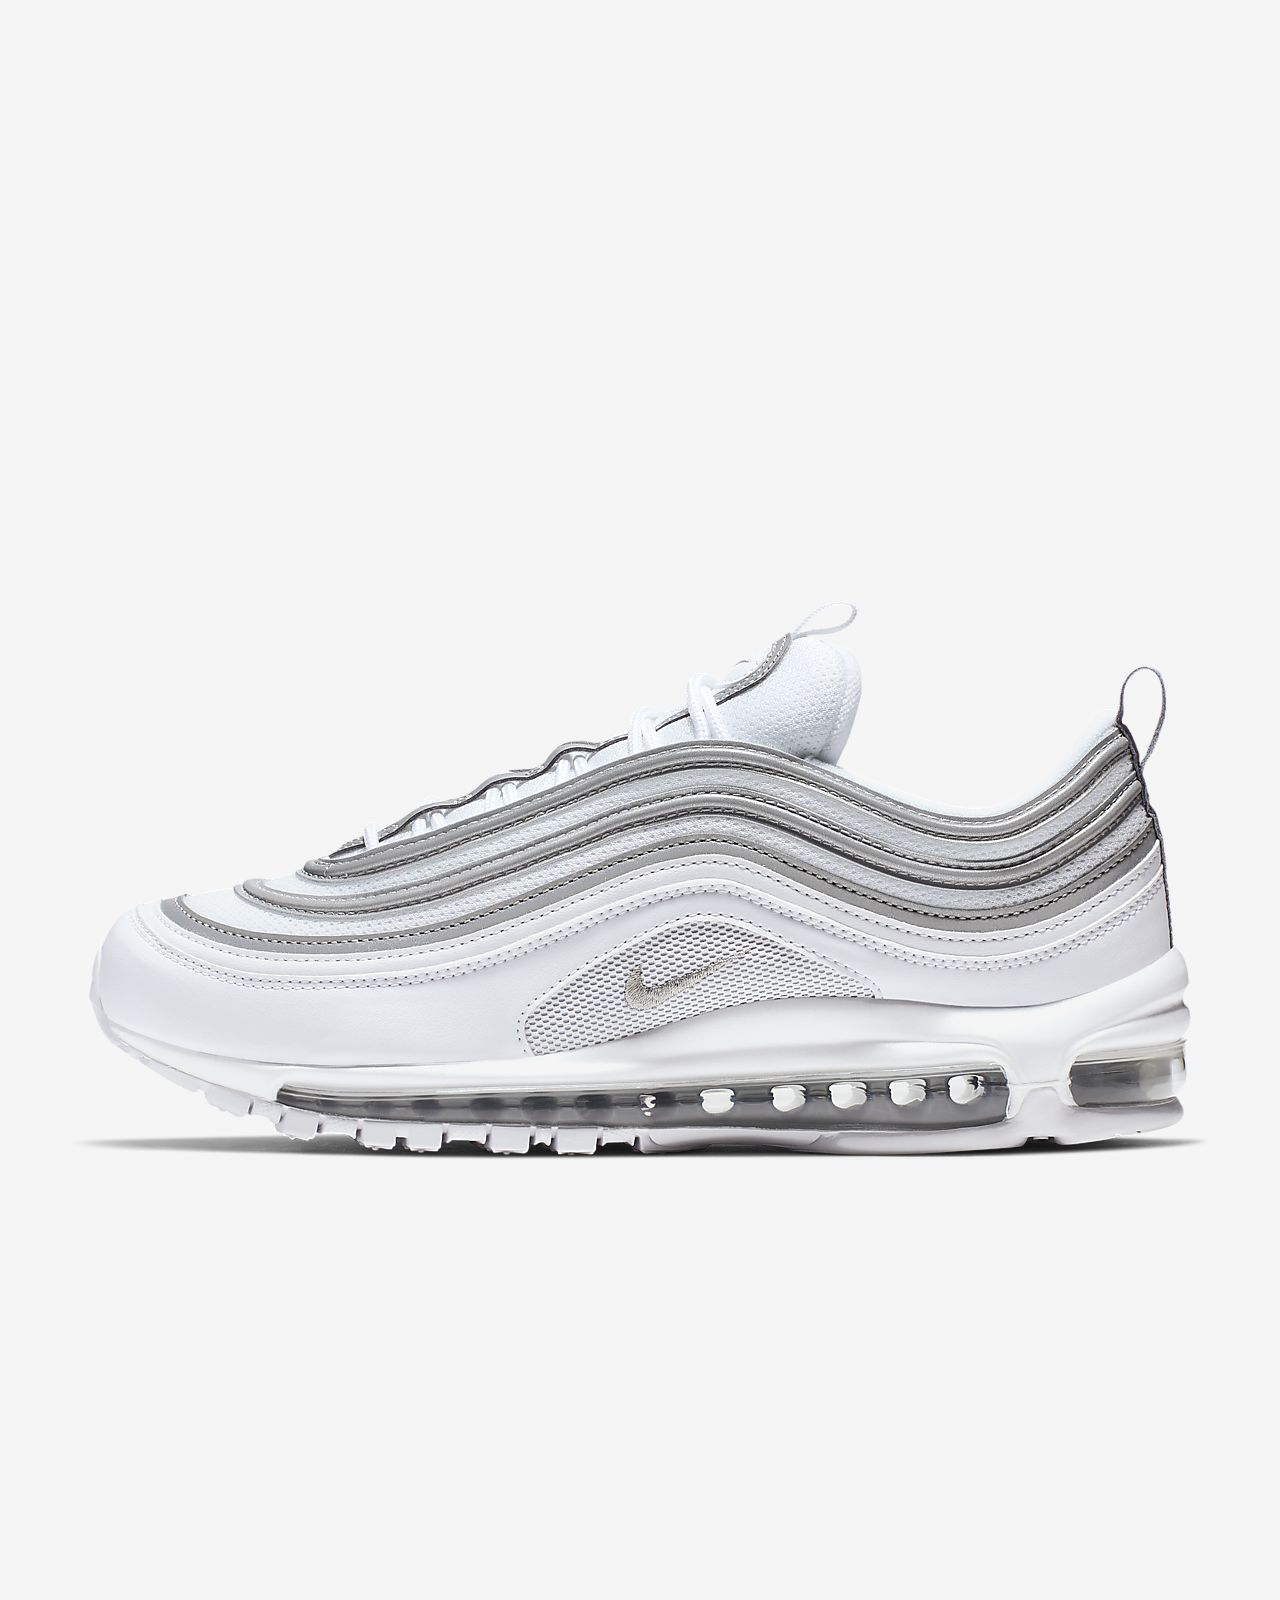 647d1993d8cc5 Nike Air Max 97 Men s Shoe. Nike.com